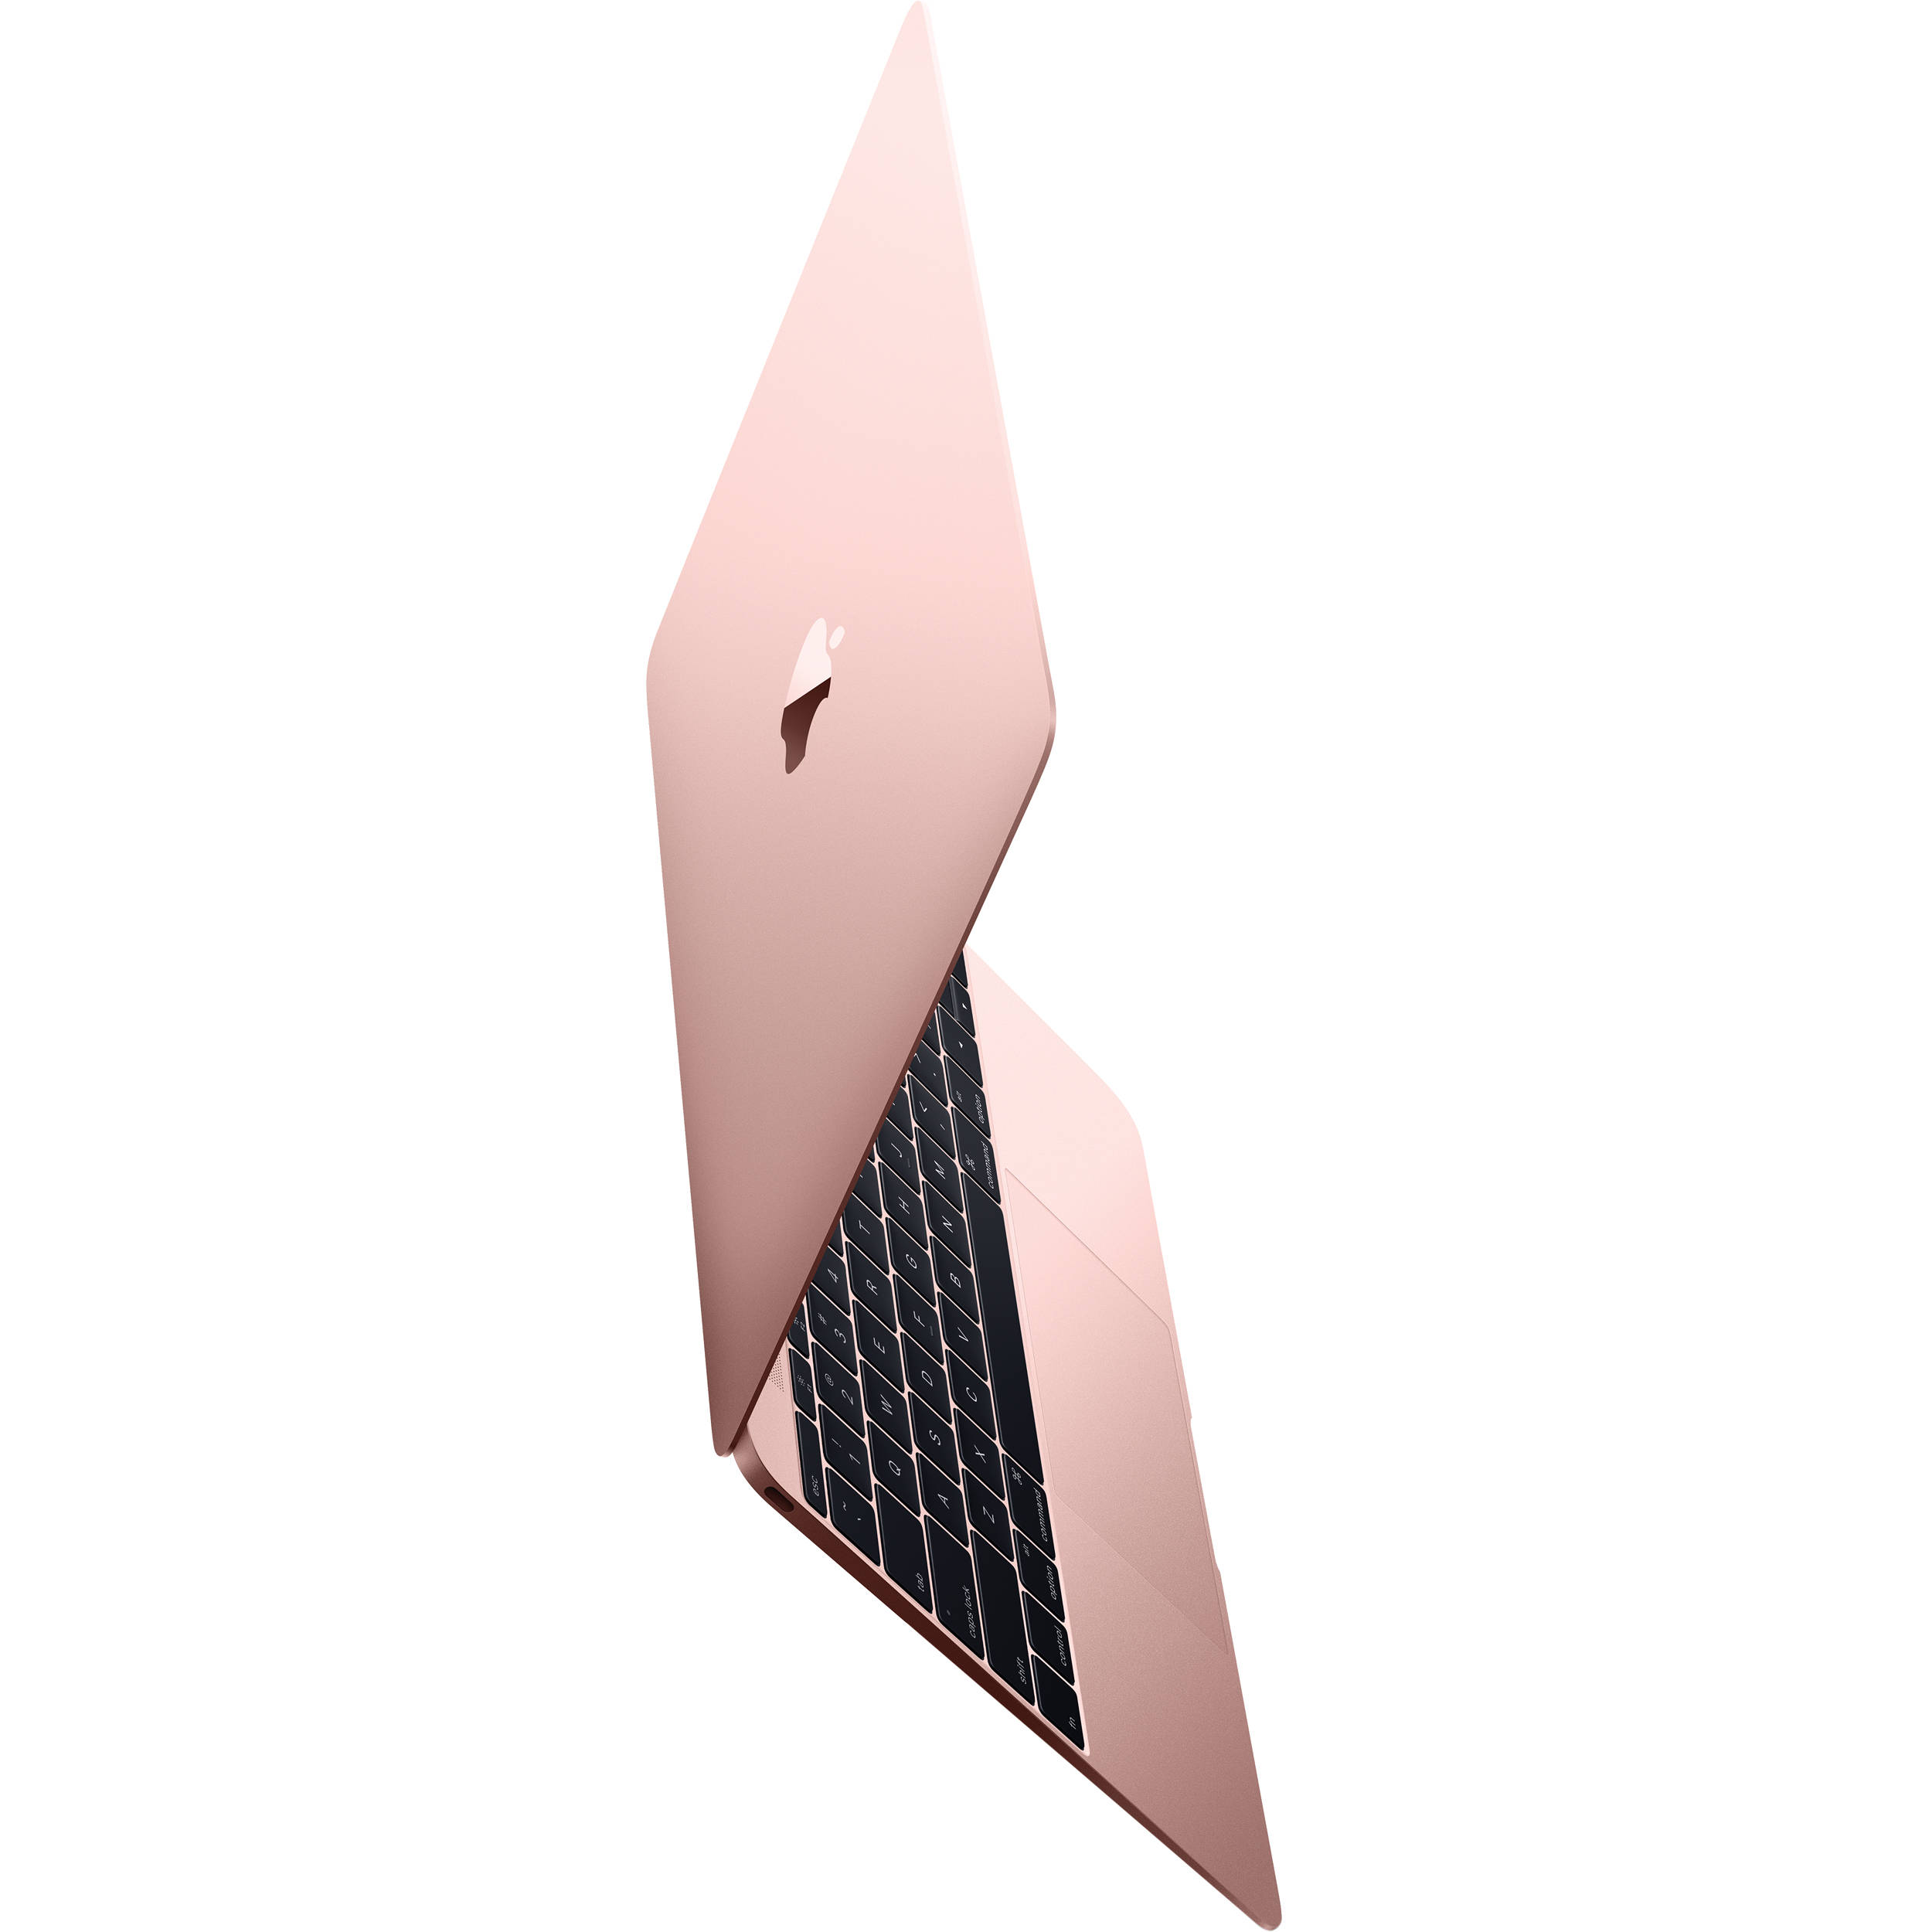 apple 12 macbook early 2016 rose gold mmgl2ll a b h. Black Bedroom Furniture Sets. Home Design Ideas